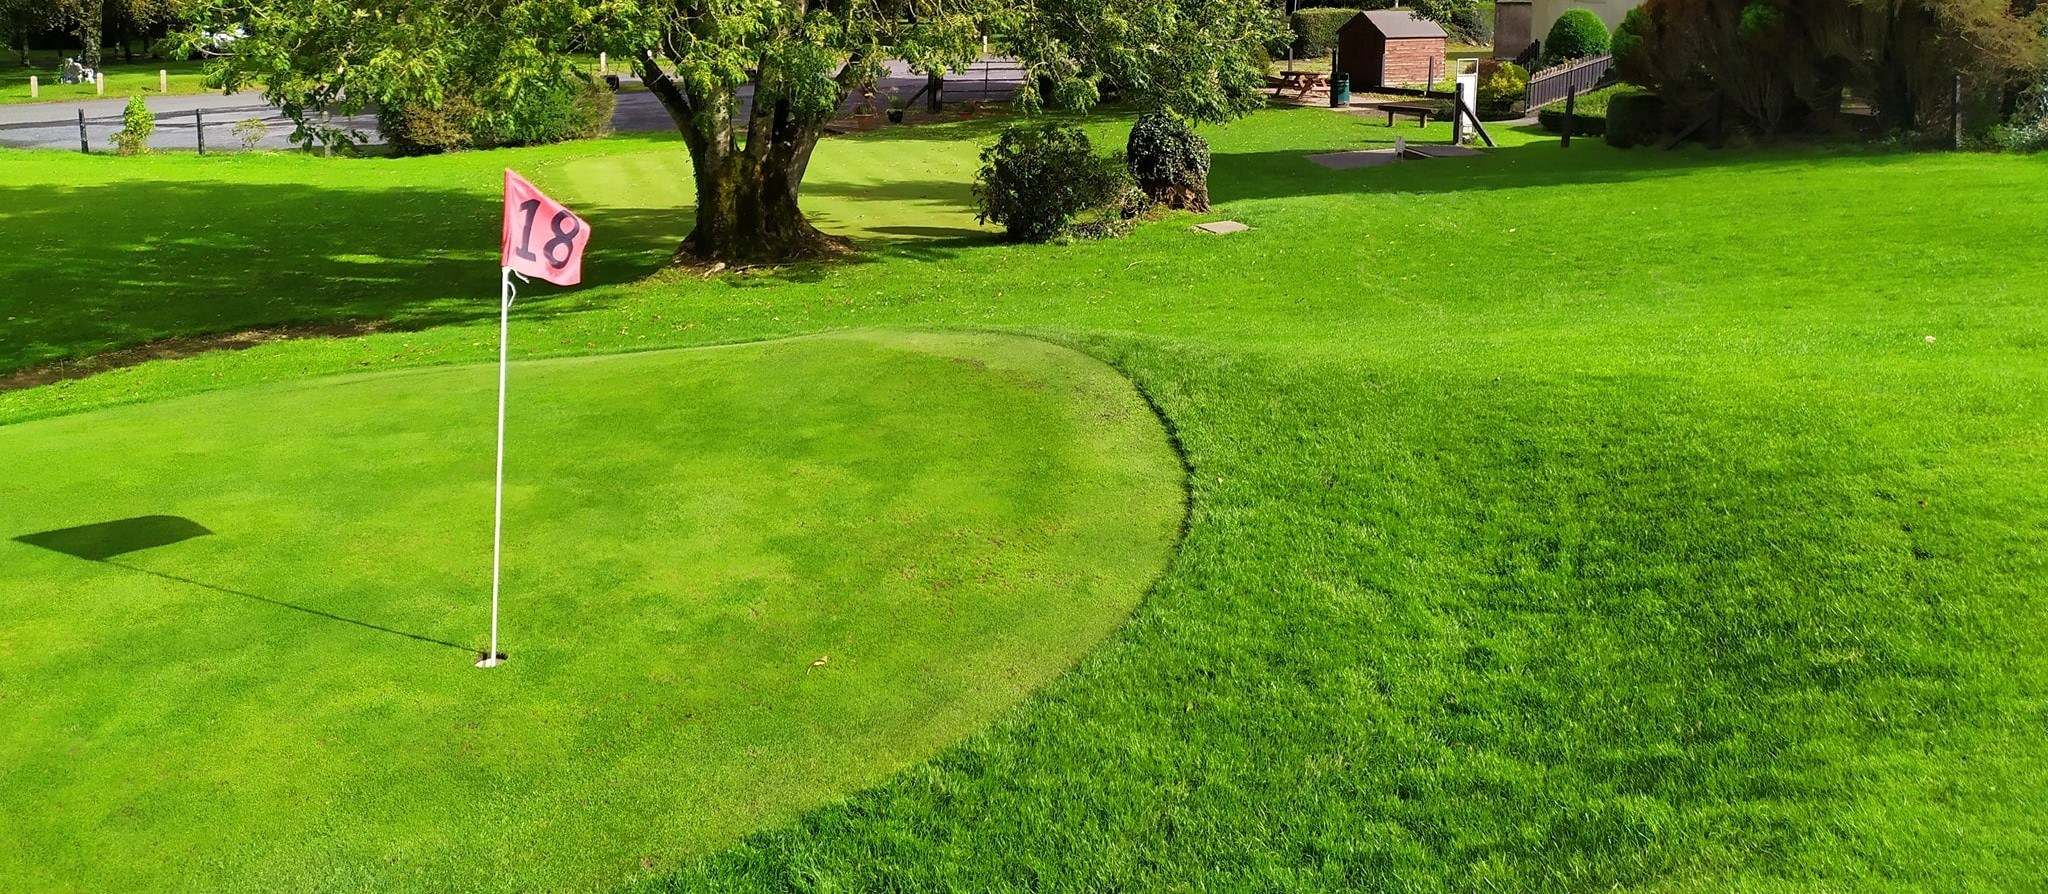 Glenside Pitch and Putt